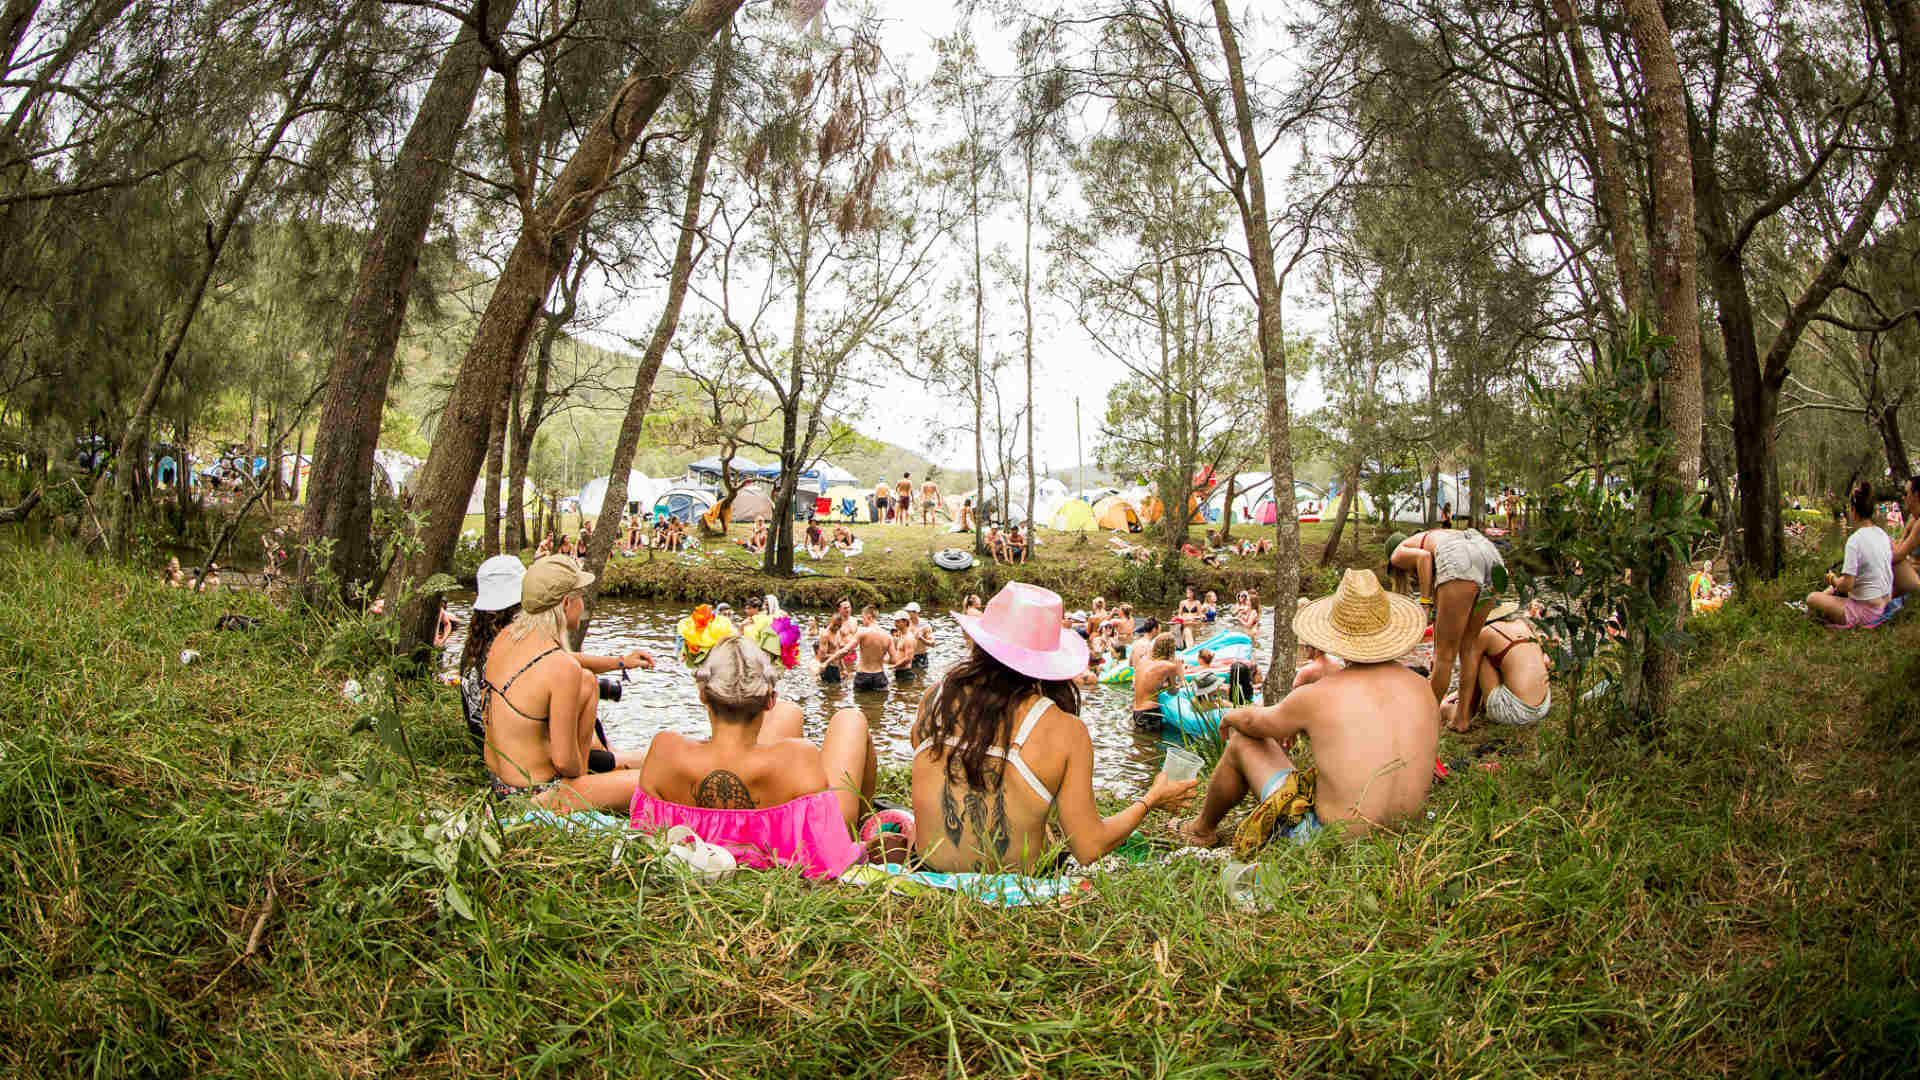 New Year's Eve Festival Lost Paradise Has Been Cancelled Because of the NSW Bushfires